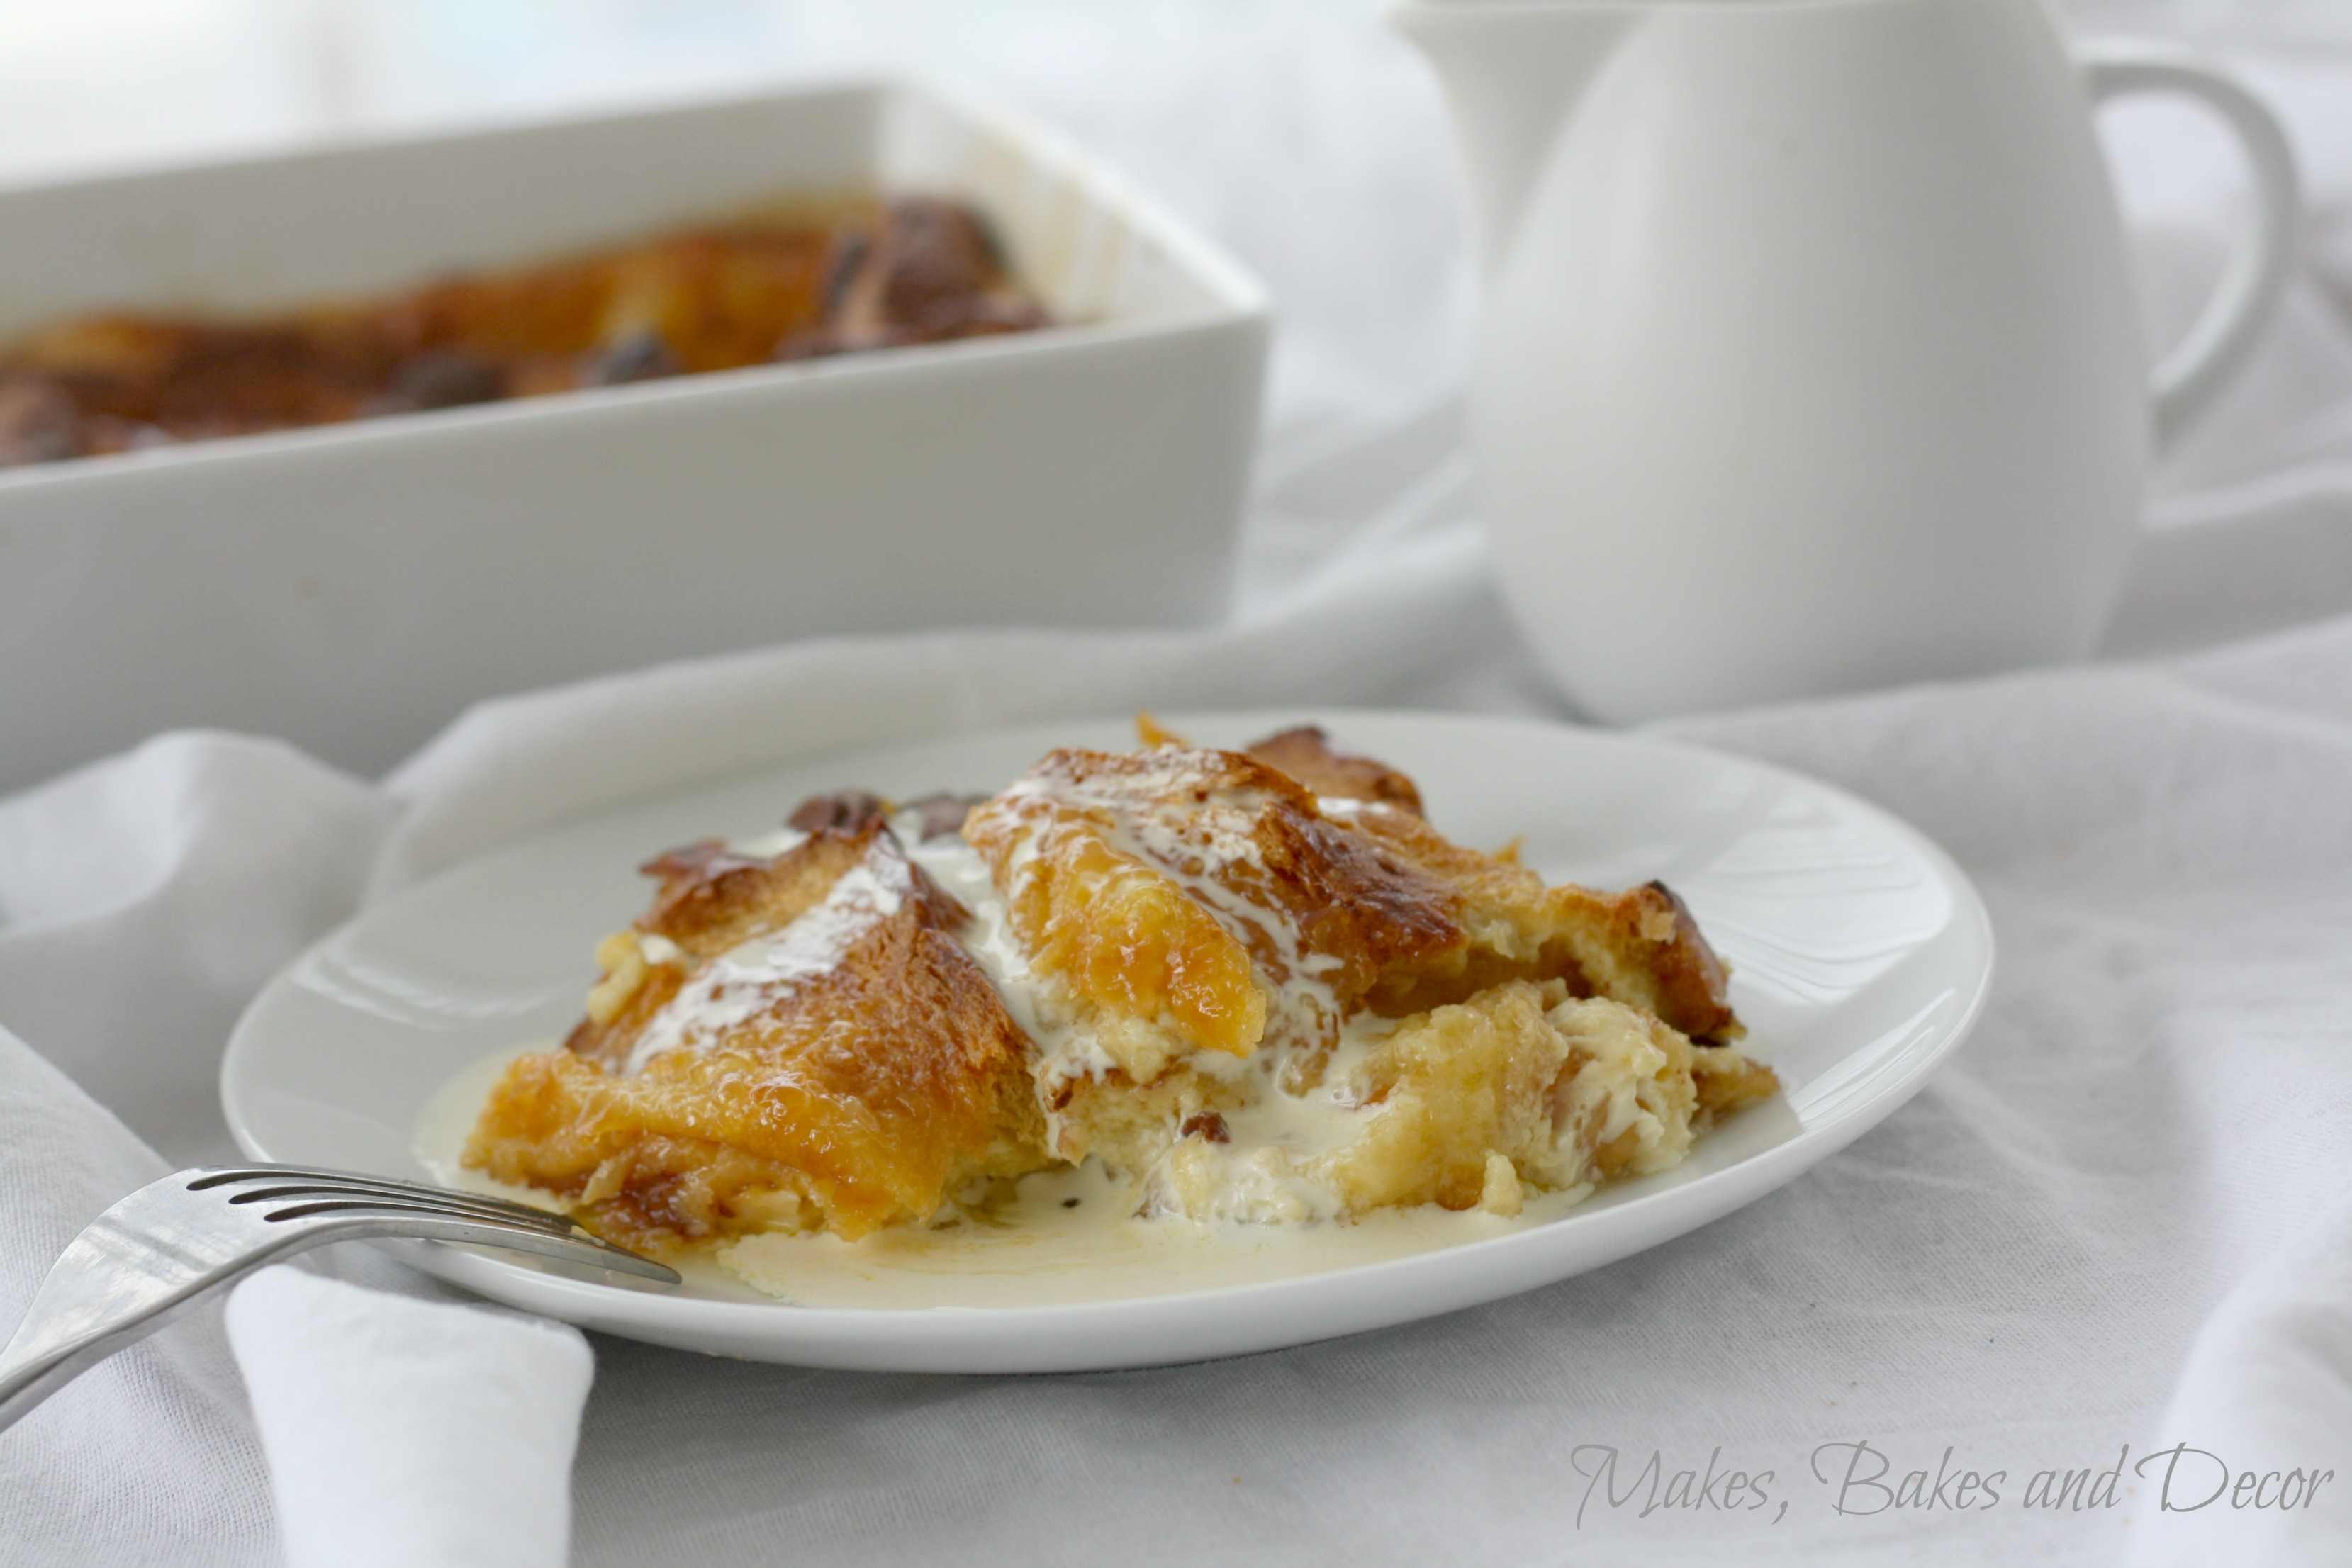 Orange and Chocolate Bread and Butter Pudding - Makes, Bakes and Decor